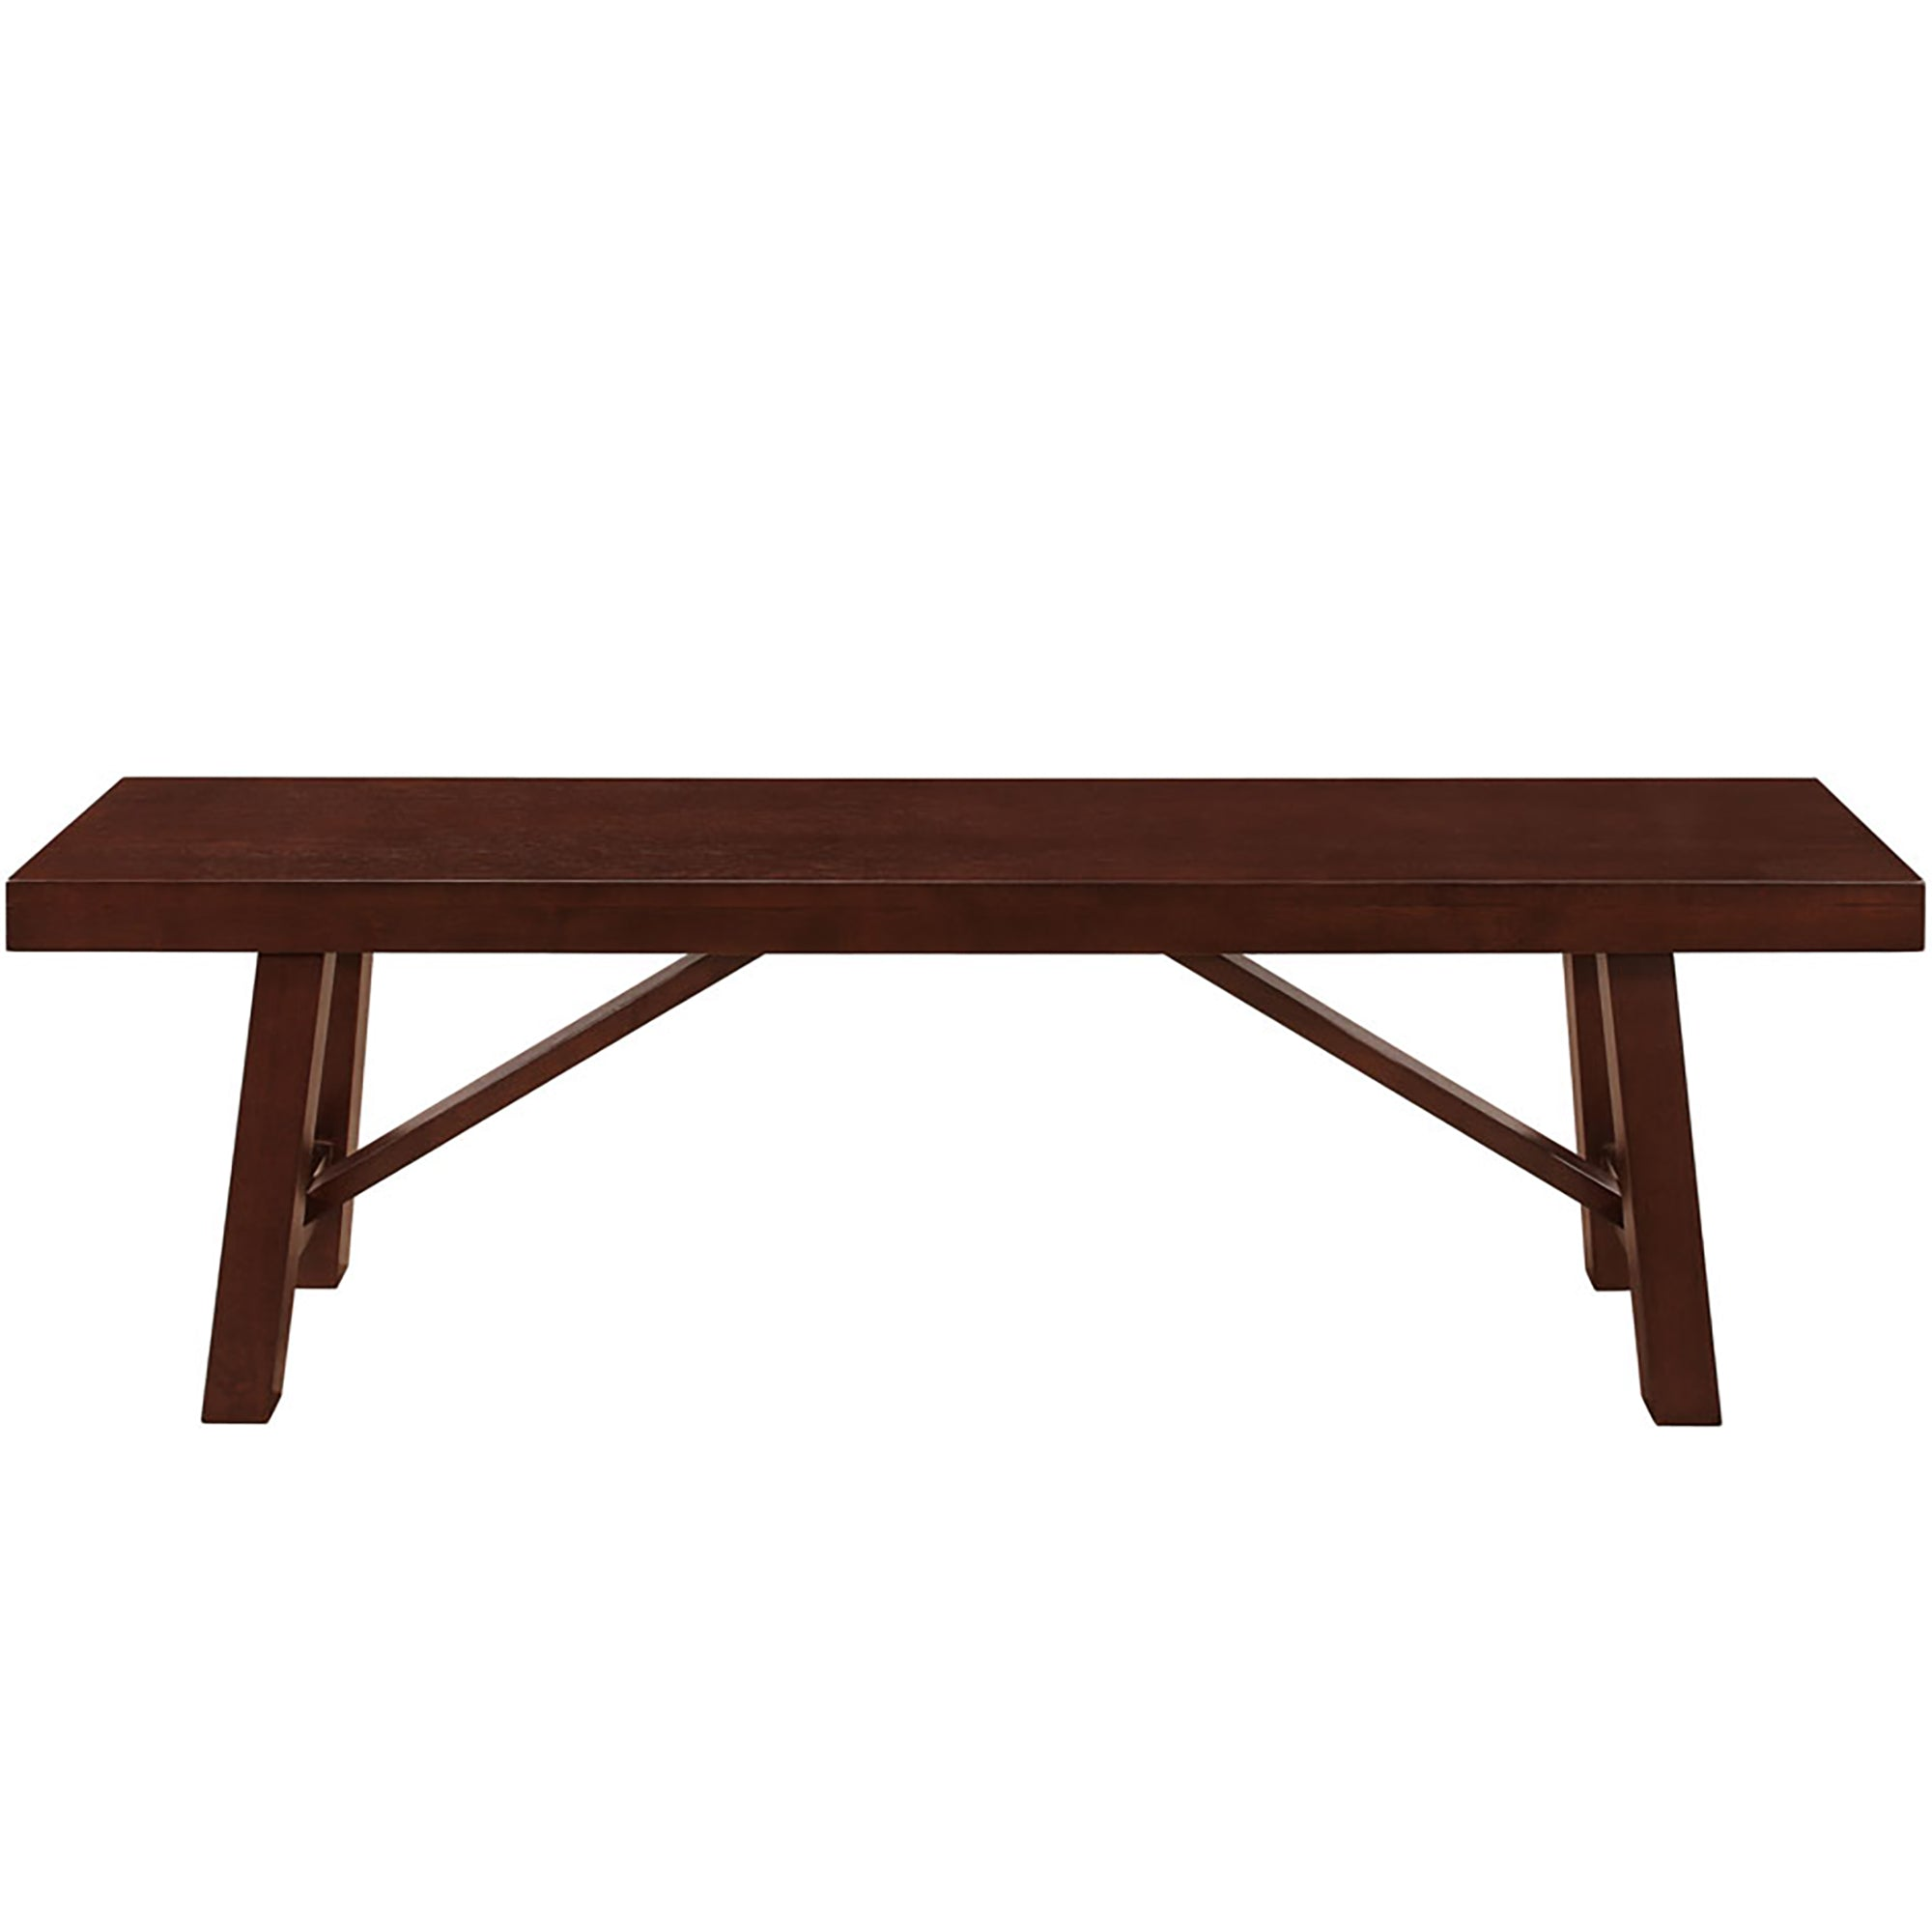 "60"" Solid Wood Trestle Dining Table - Espresso"